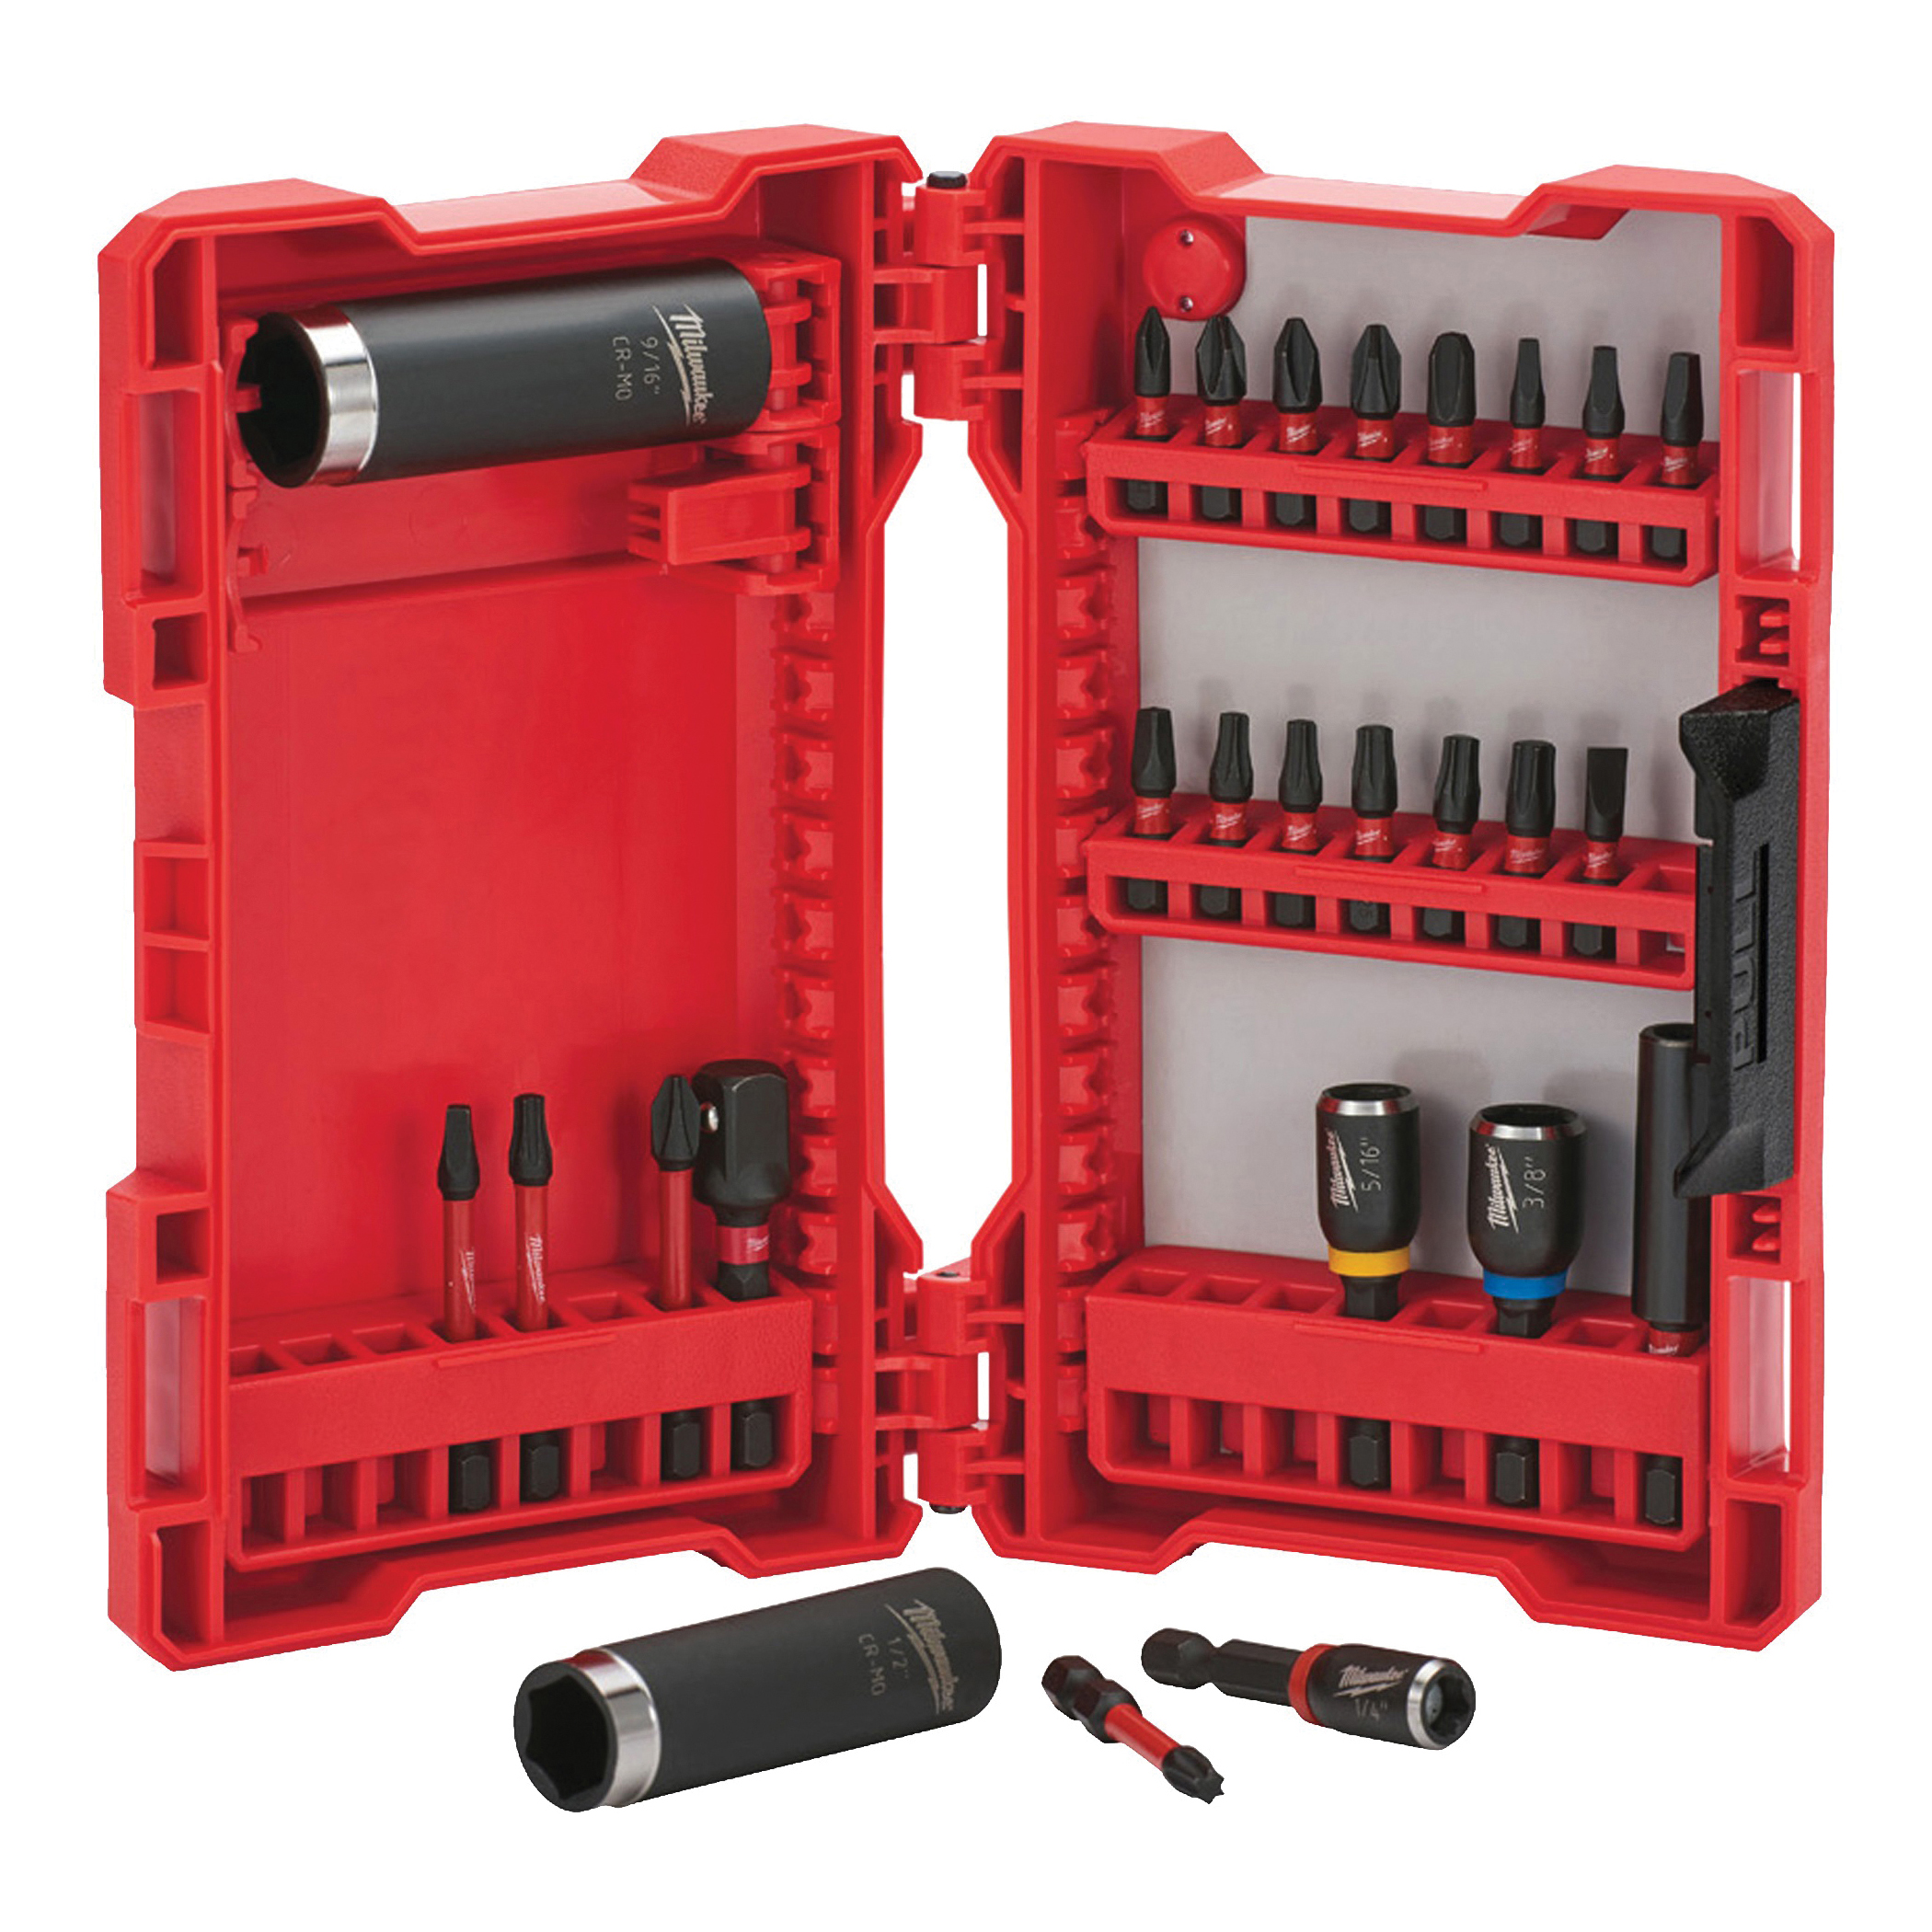 Picture of Milwaukee SHOCKWAVE Impact Duty 48-32-4408 Drive and Fasten Set, 26 -Piece, Steel